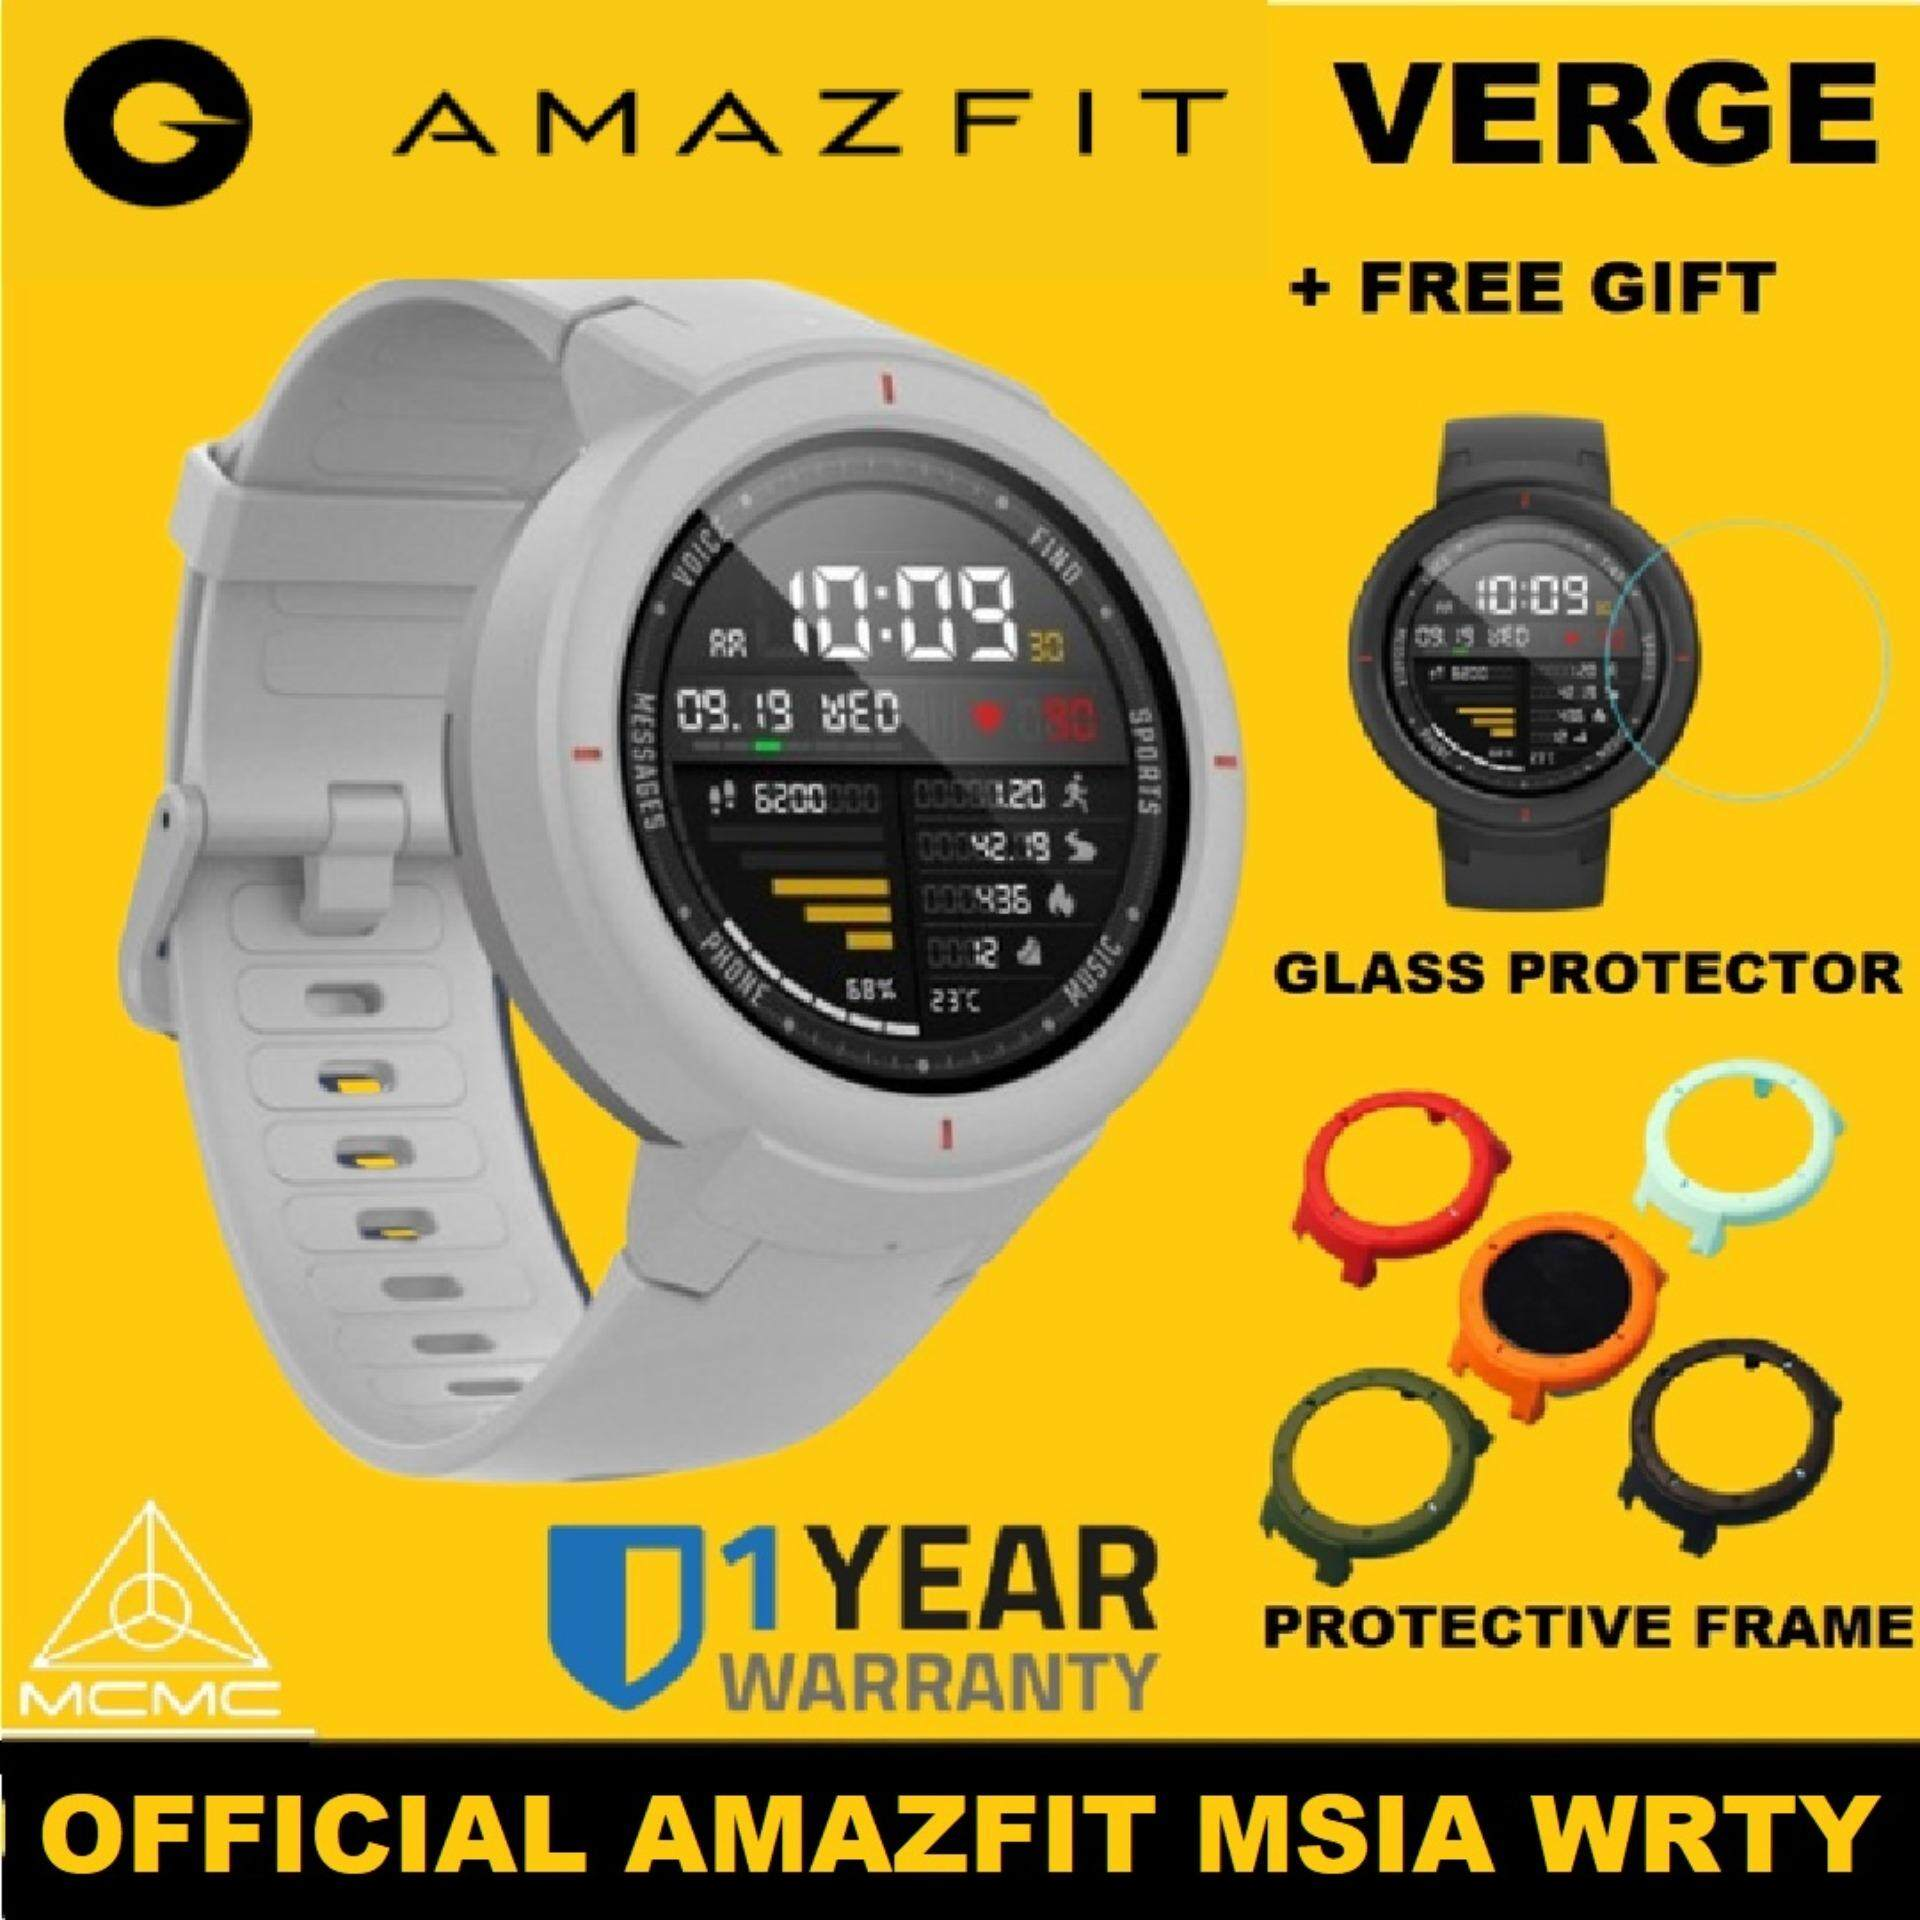 [OFFICIAL AMAZFIT MSIA WRTY] 2019 Amazfit VERGE AMOLED LCD ENGLISH VERSION  with SIRIM and MCMC Xiaomi Huami Amazfit Smart Sport Watch 1 34 Inch 2 5D